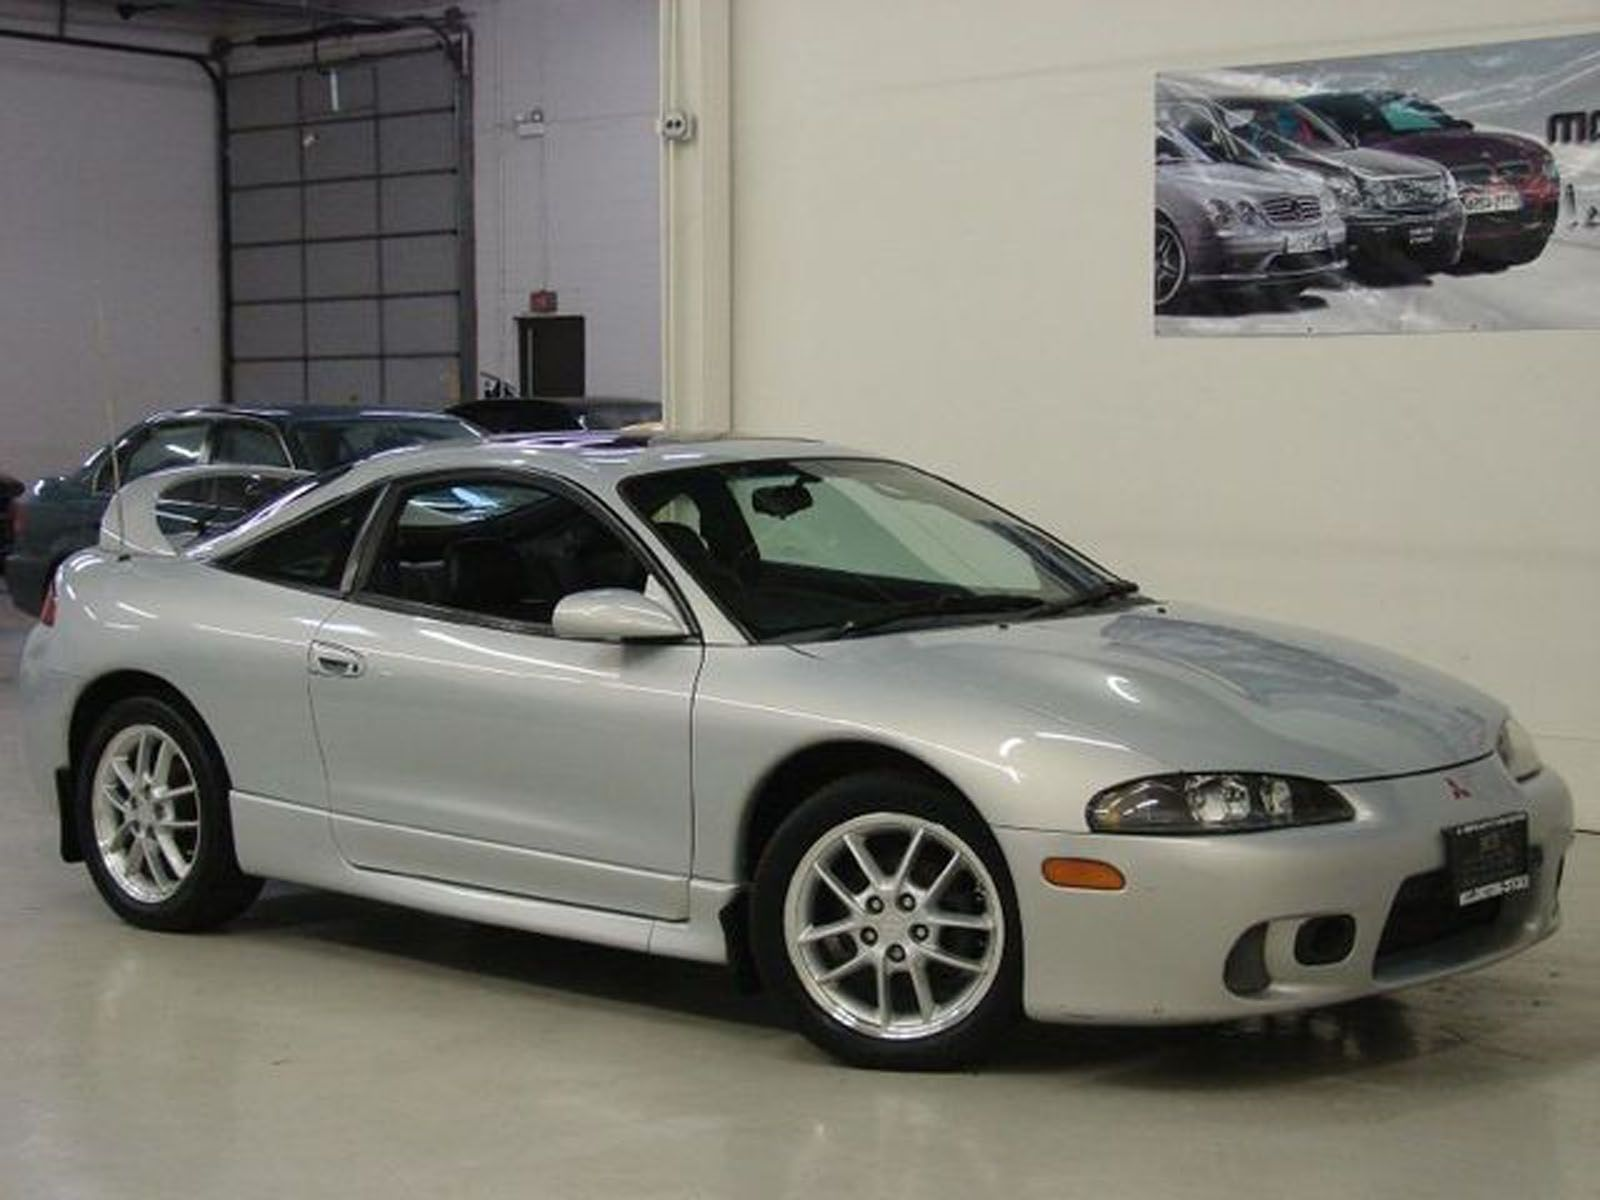 remarkable mitsubishi eclipse gsx photos gallery mitsubishi rh pinterest com